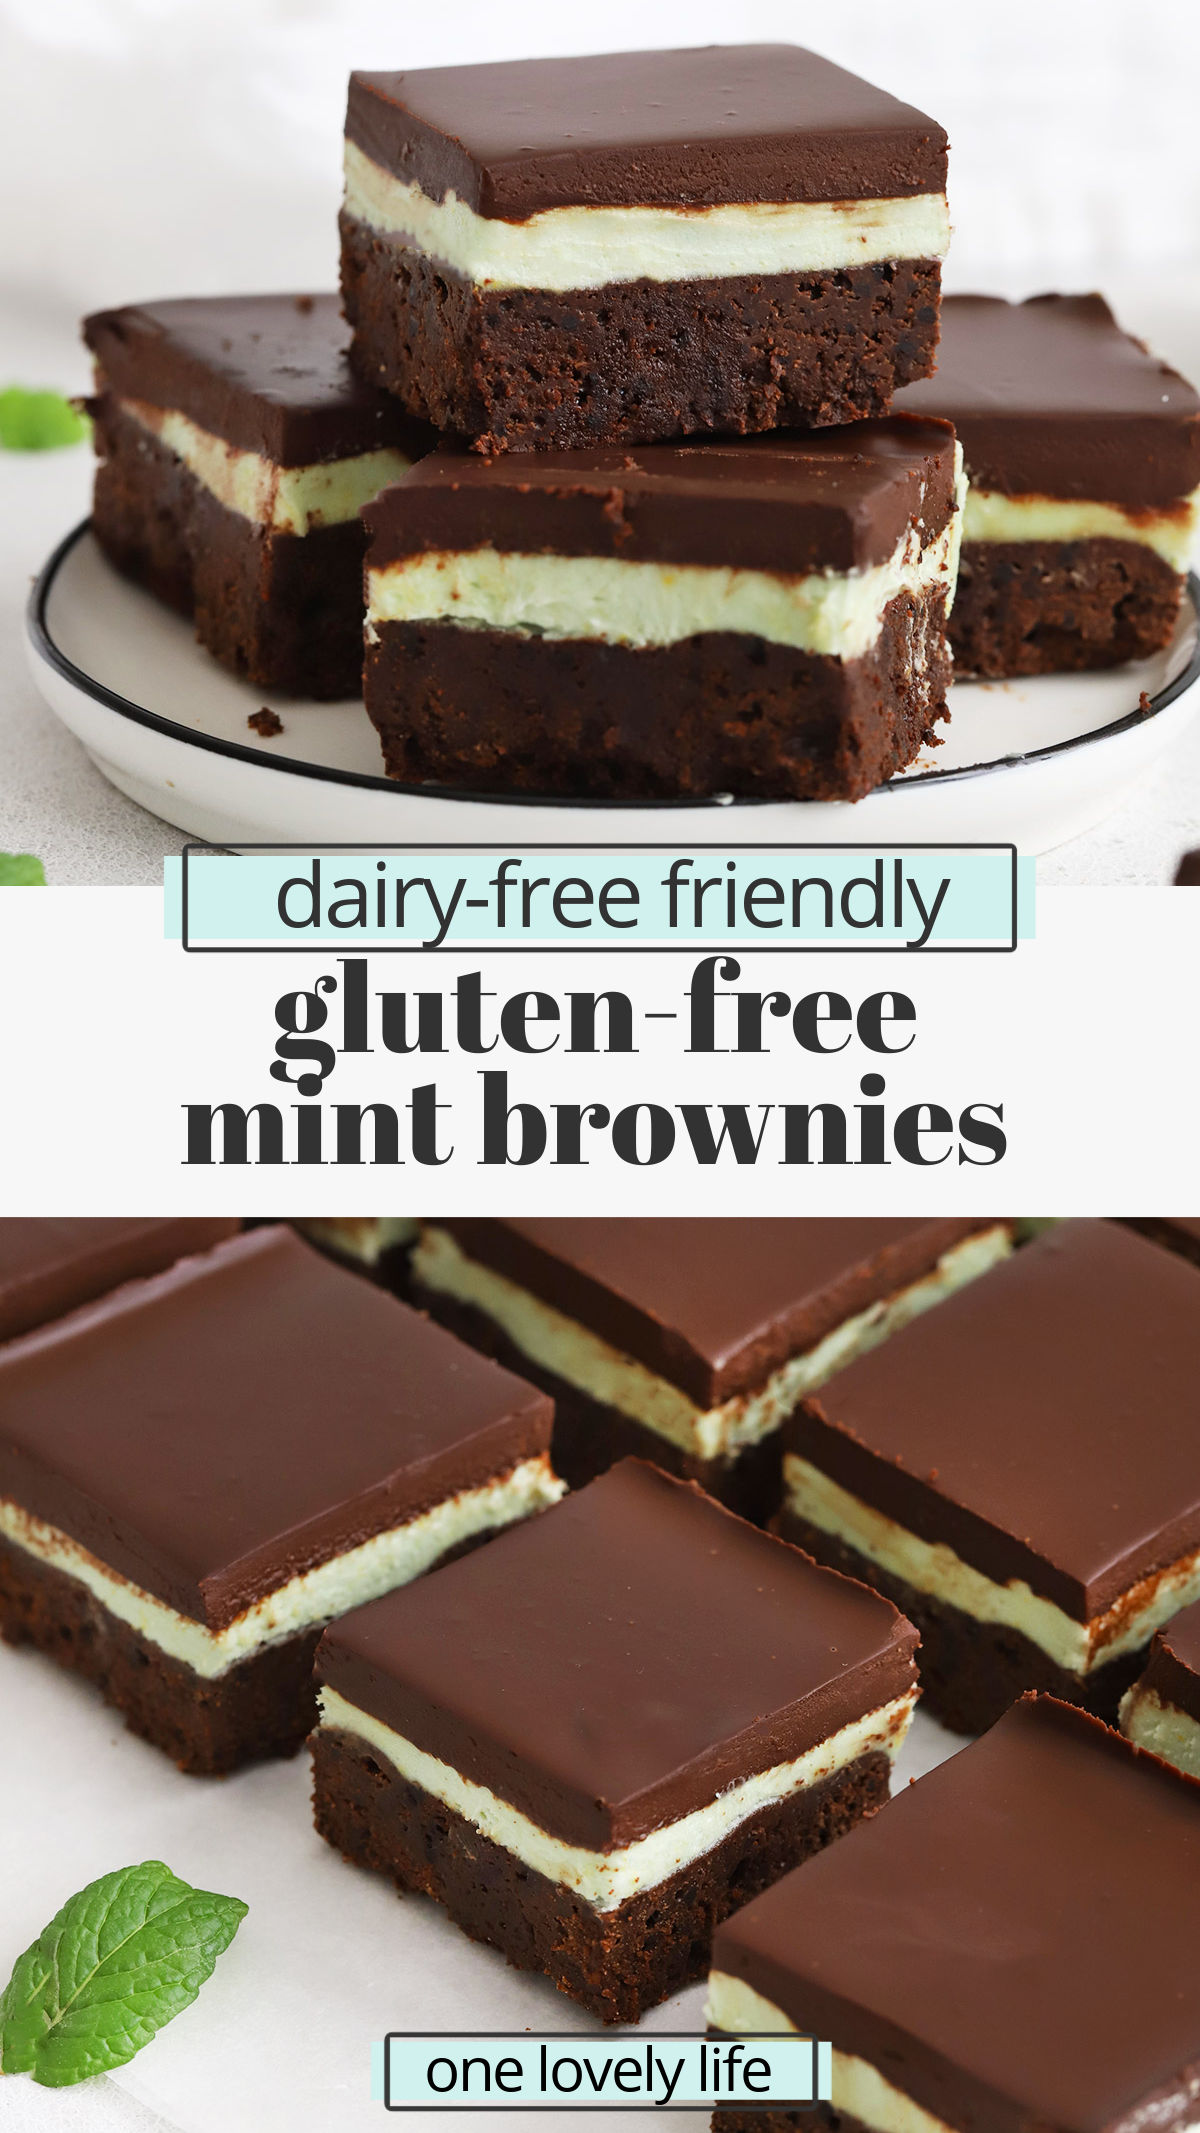 Gluten-Free Mint Brownies - Fudgy gluten-free brownies topped with mint frosting & chocolate ganache make a perfect retro treat! (Dairy-Free) // Gluten Free Mint Brownies // Gluten Free Frosted Mint Brownies // Gluten Free Grasshopper Brownies // Gluten Free BYU Mint Brownies #glutenfree #brownies #mintbrownies